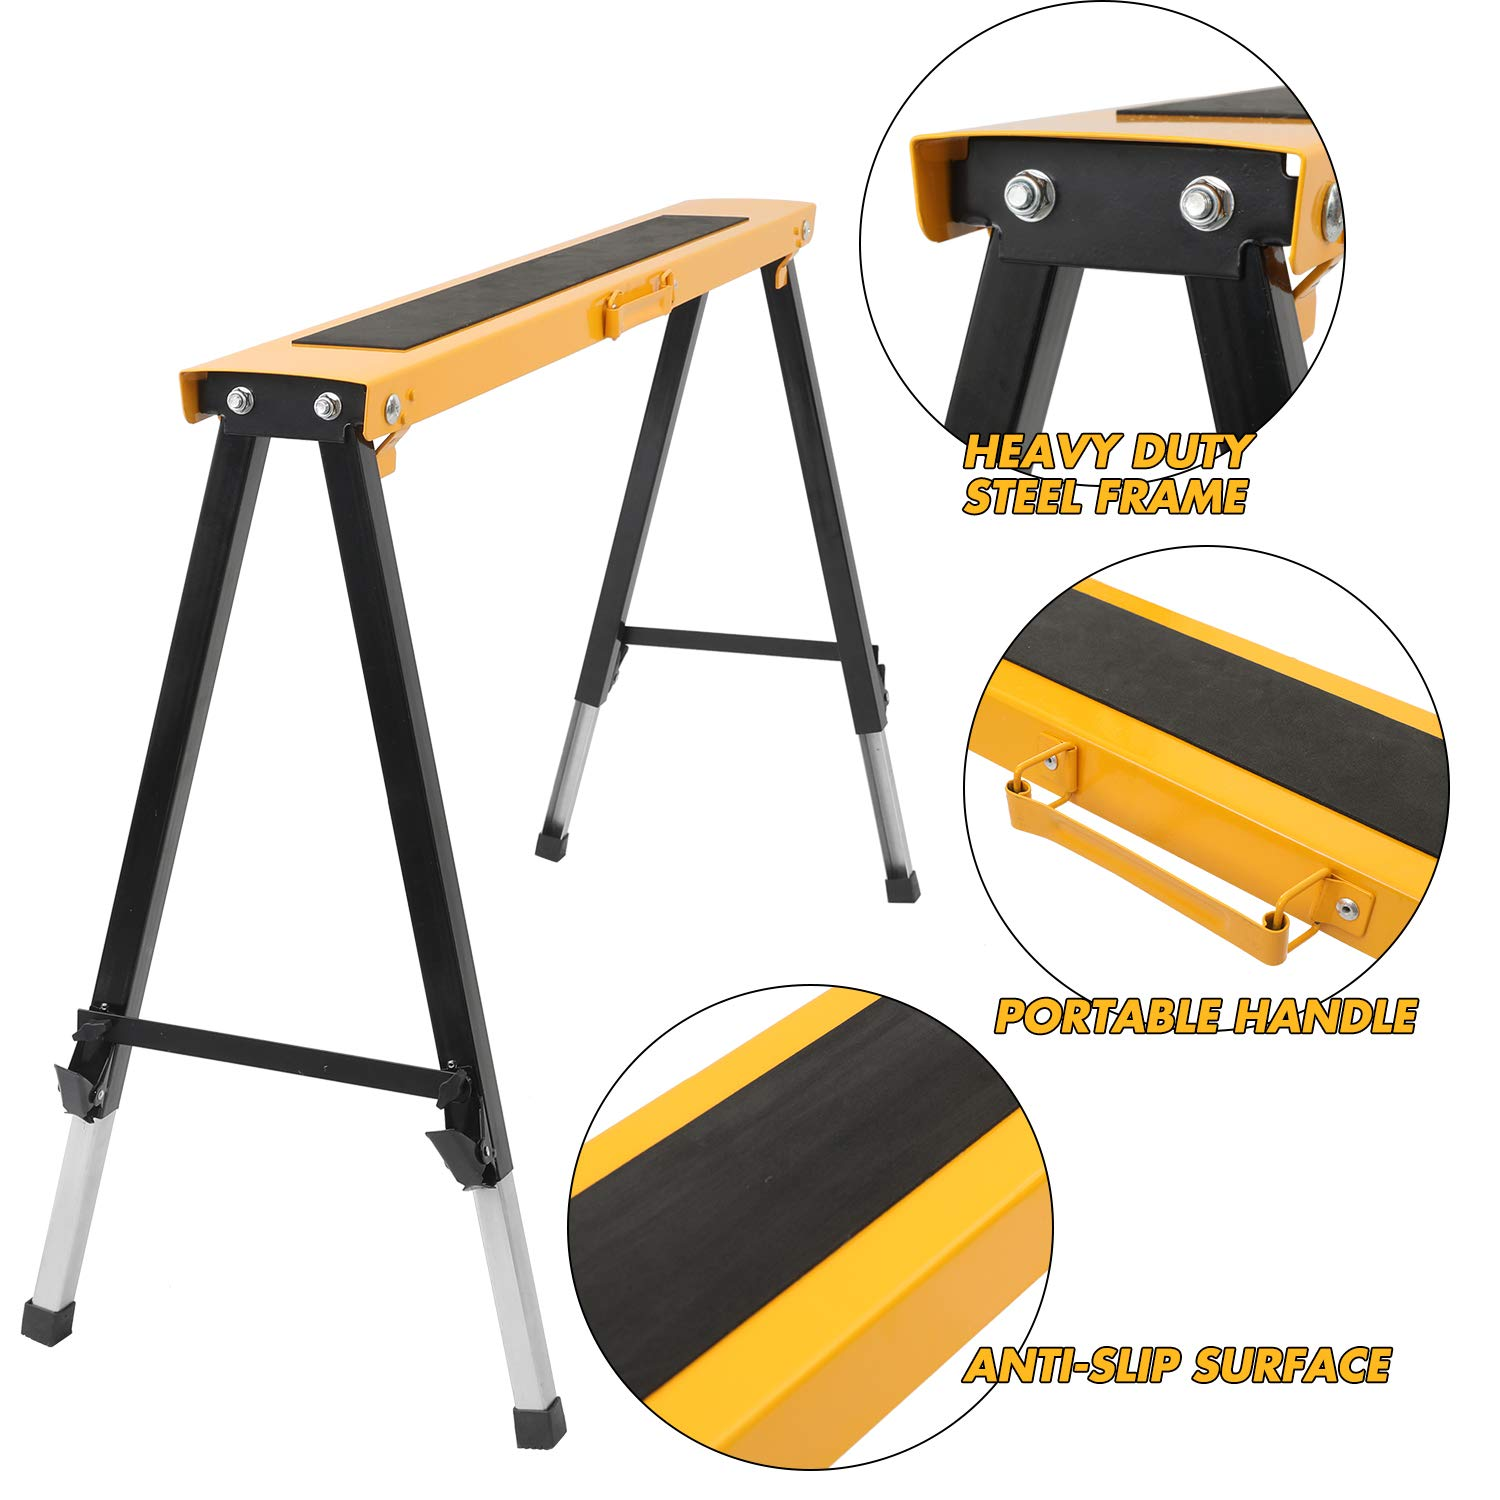 2 Pack Adjustable Saw Horse w/Clamps and Handle Heavy Duty Folding Portable Sawhorse 330lbs Weight Capacity Each by Hromee (Image #5)